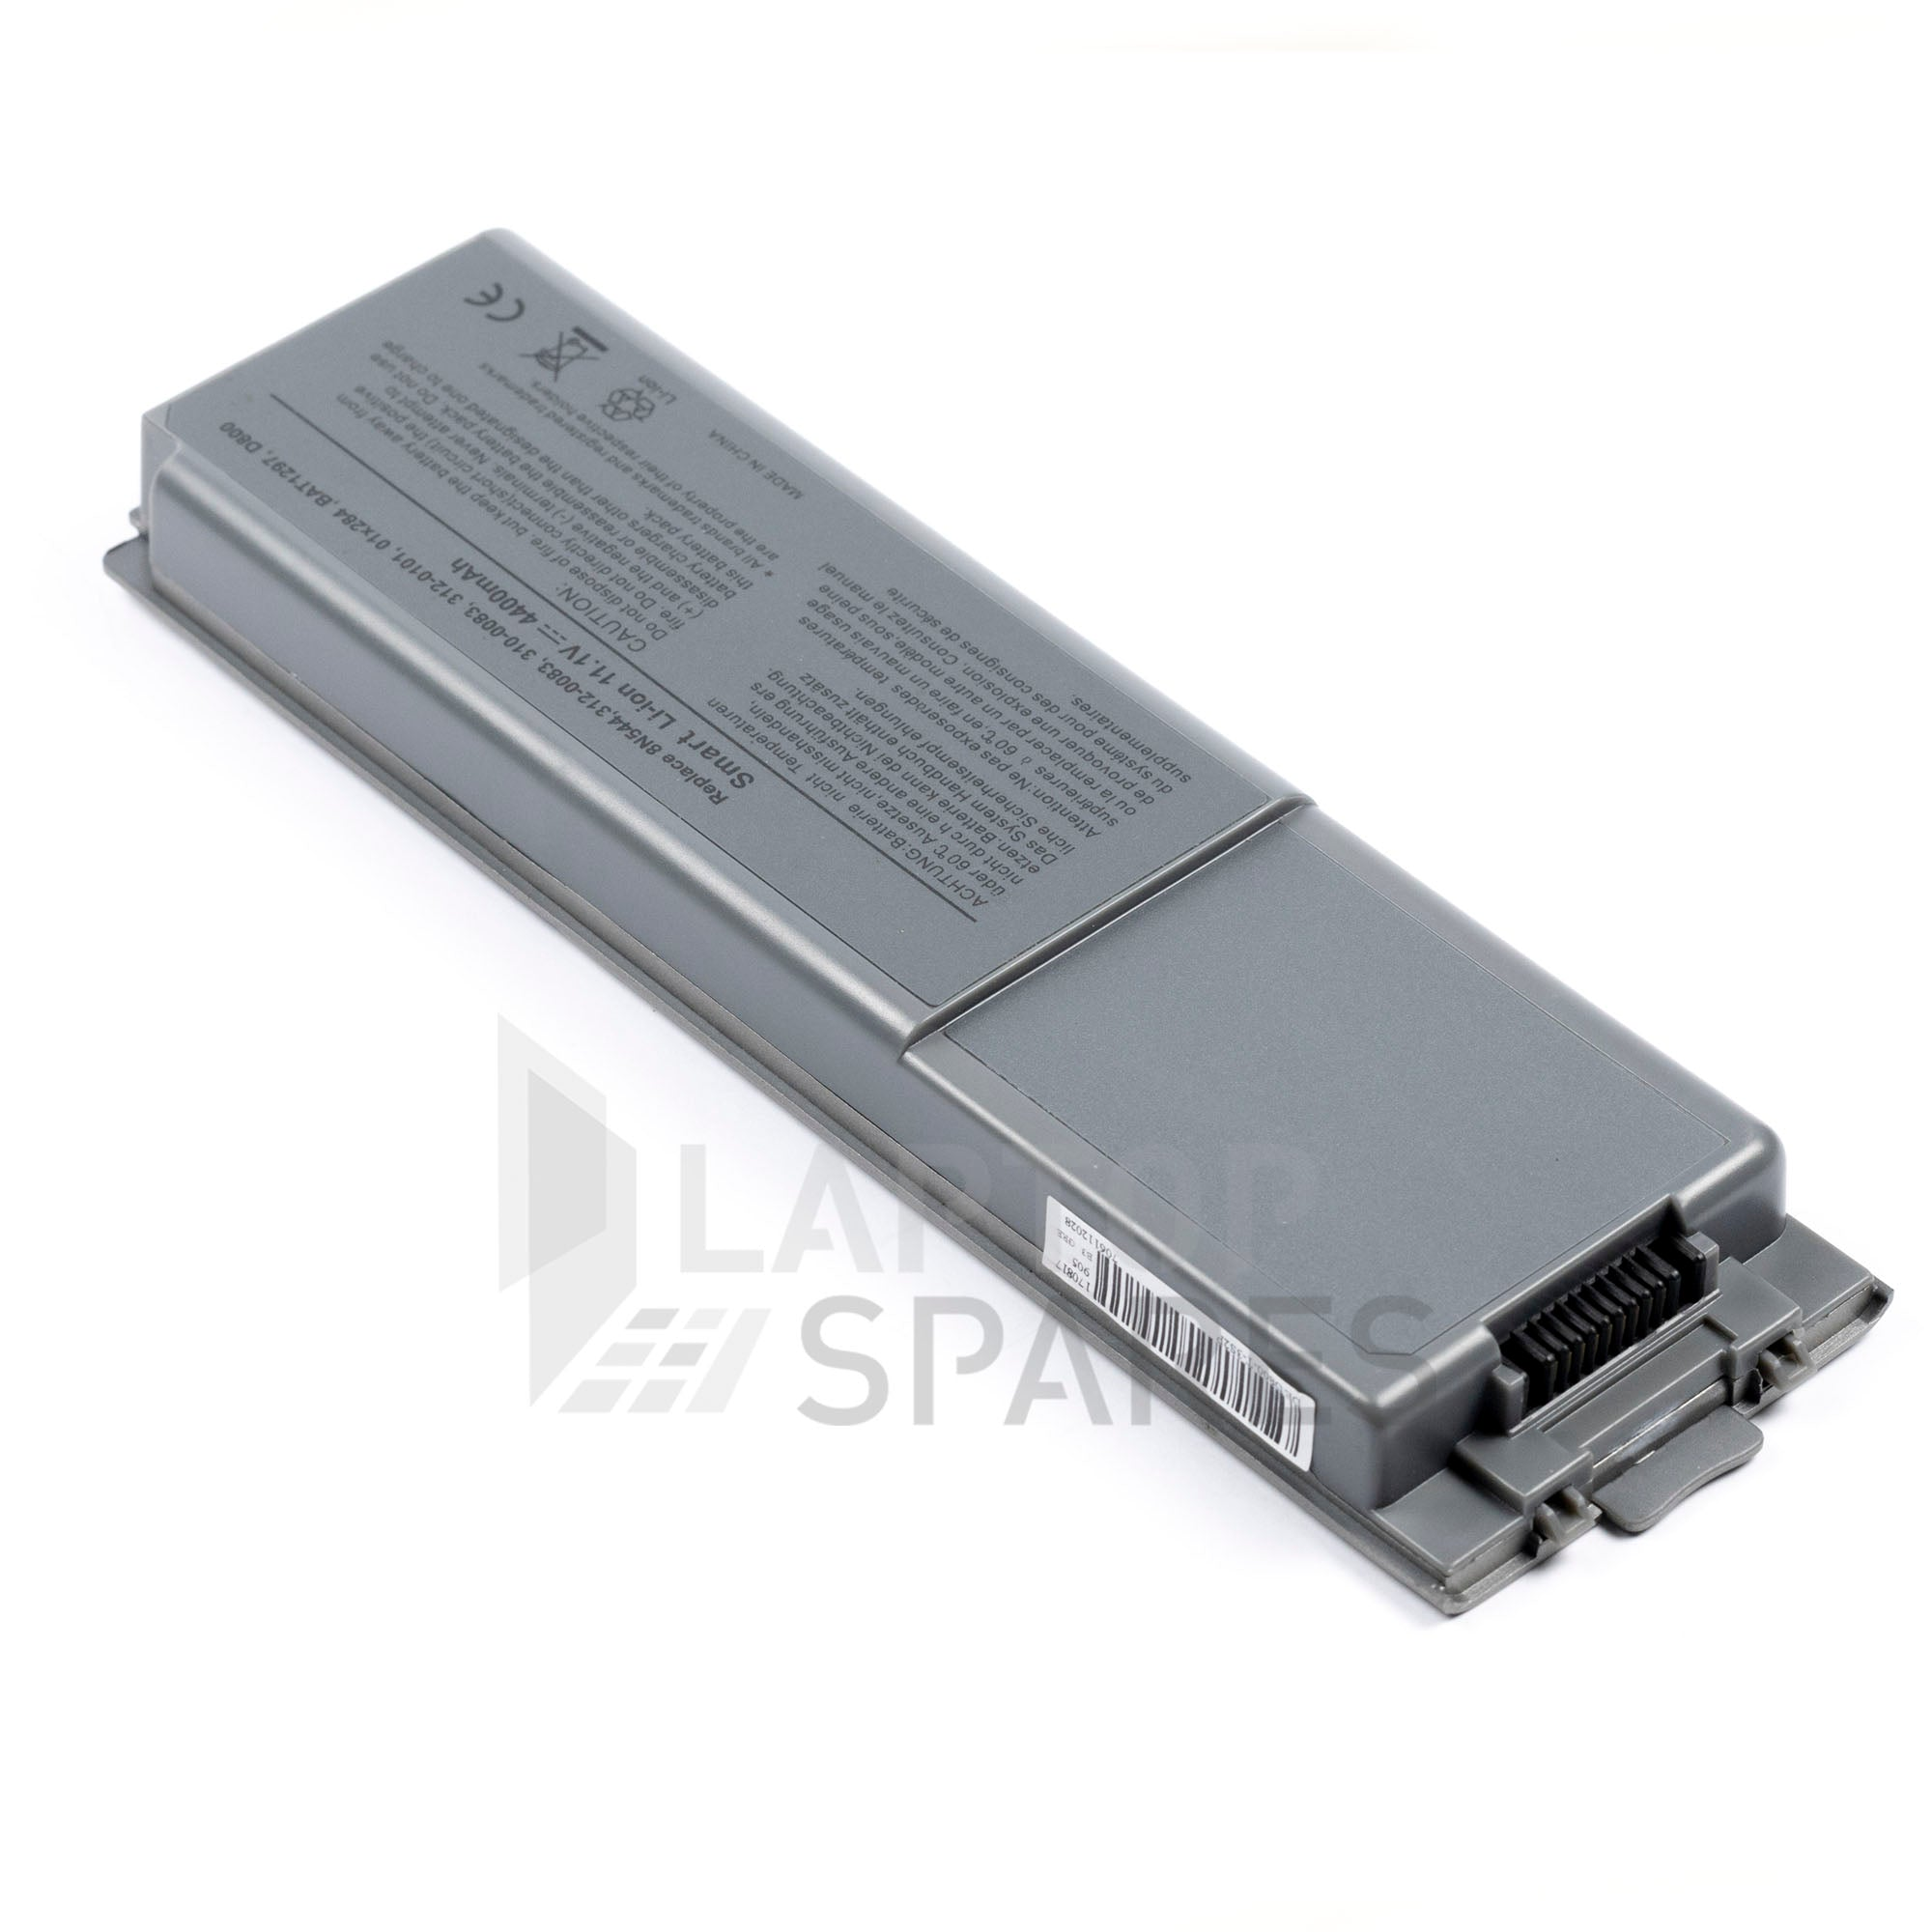 Dell Latitude D800 4400mAh 6 Cell Battery